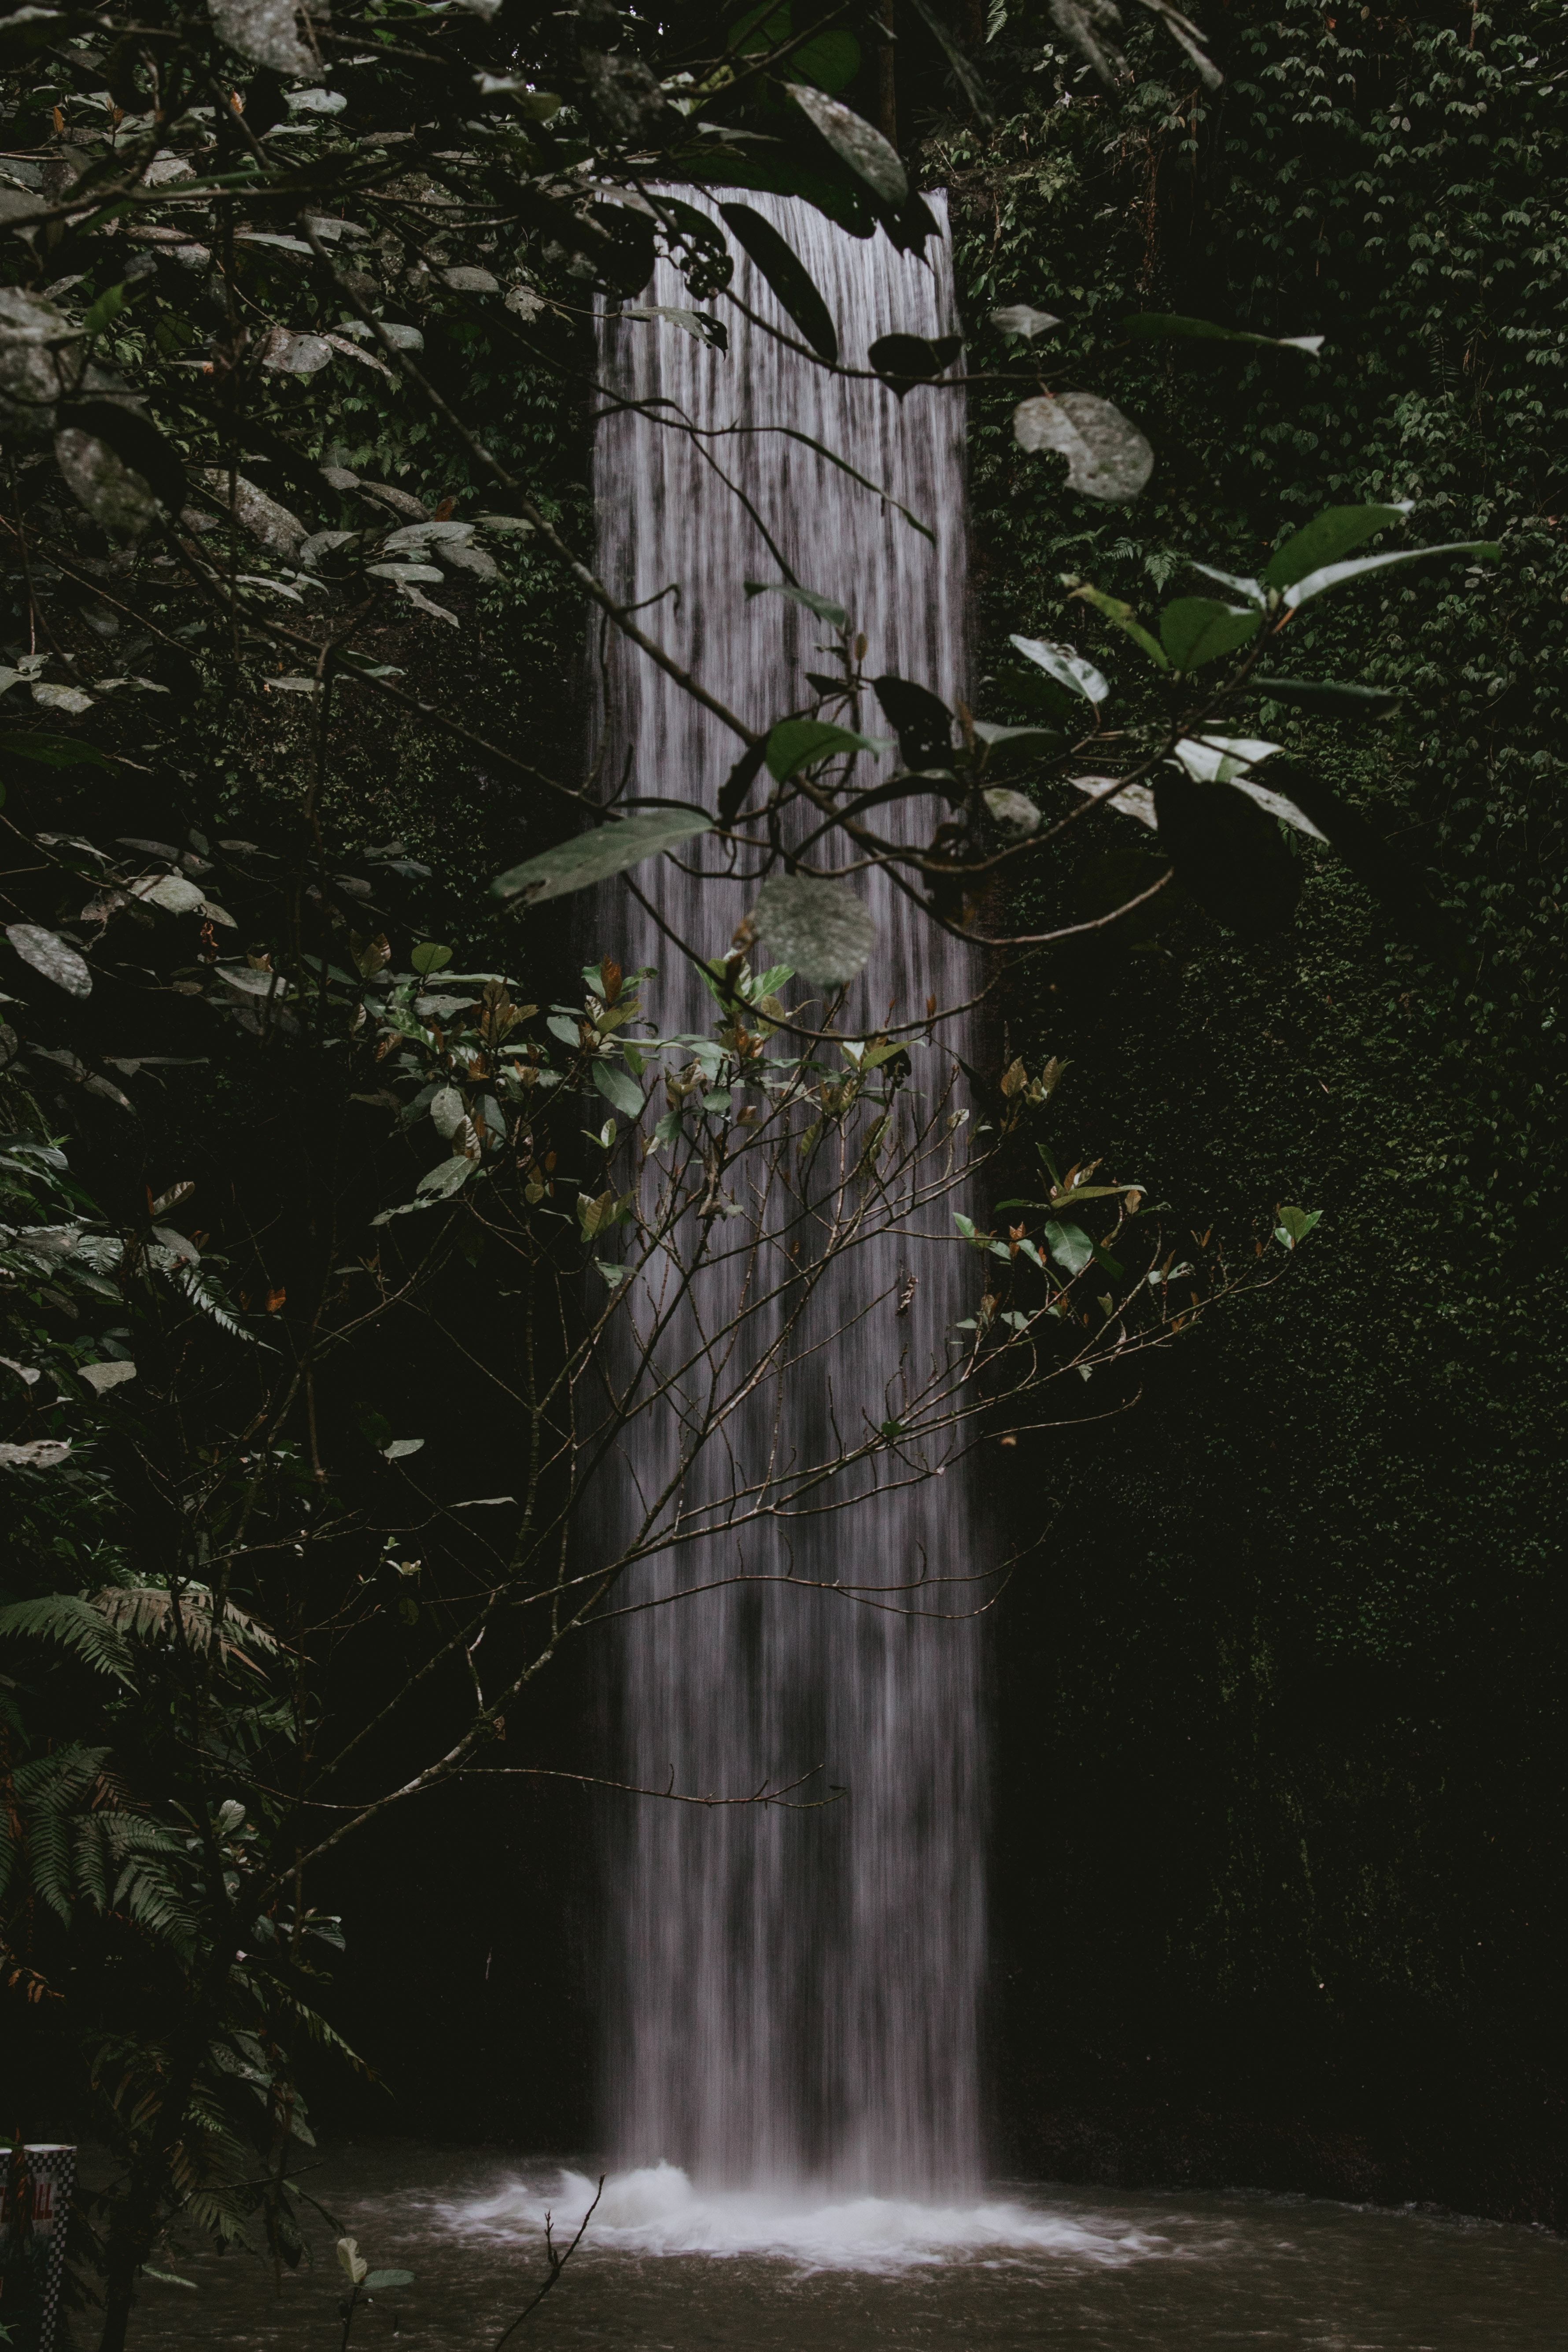 waterfalls in a forest